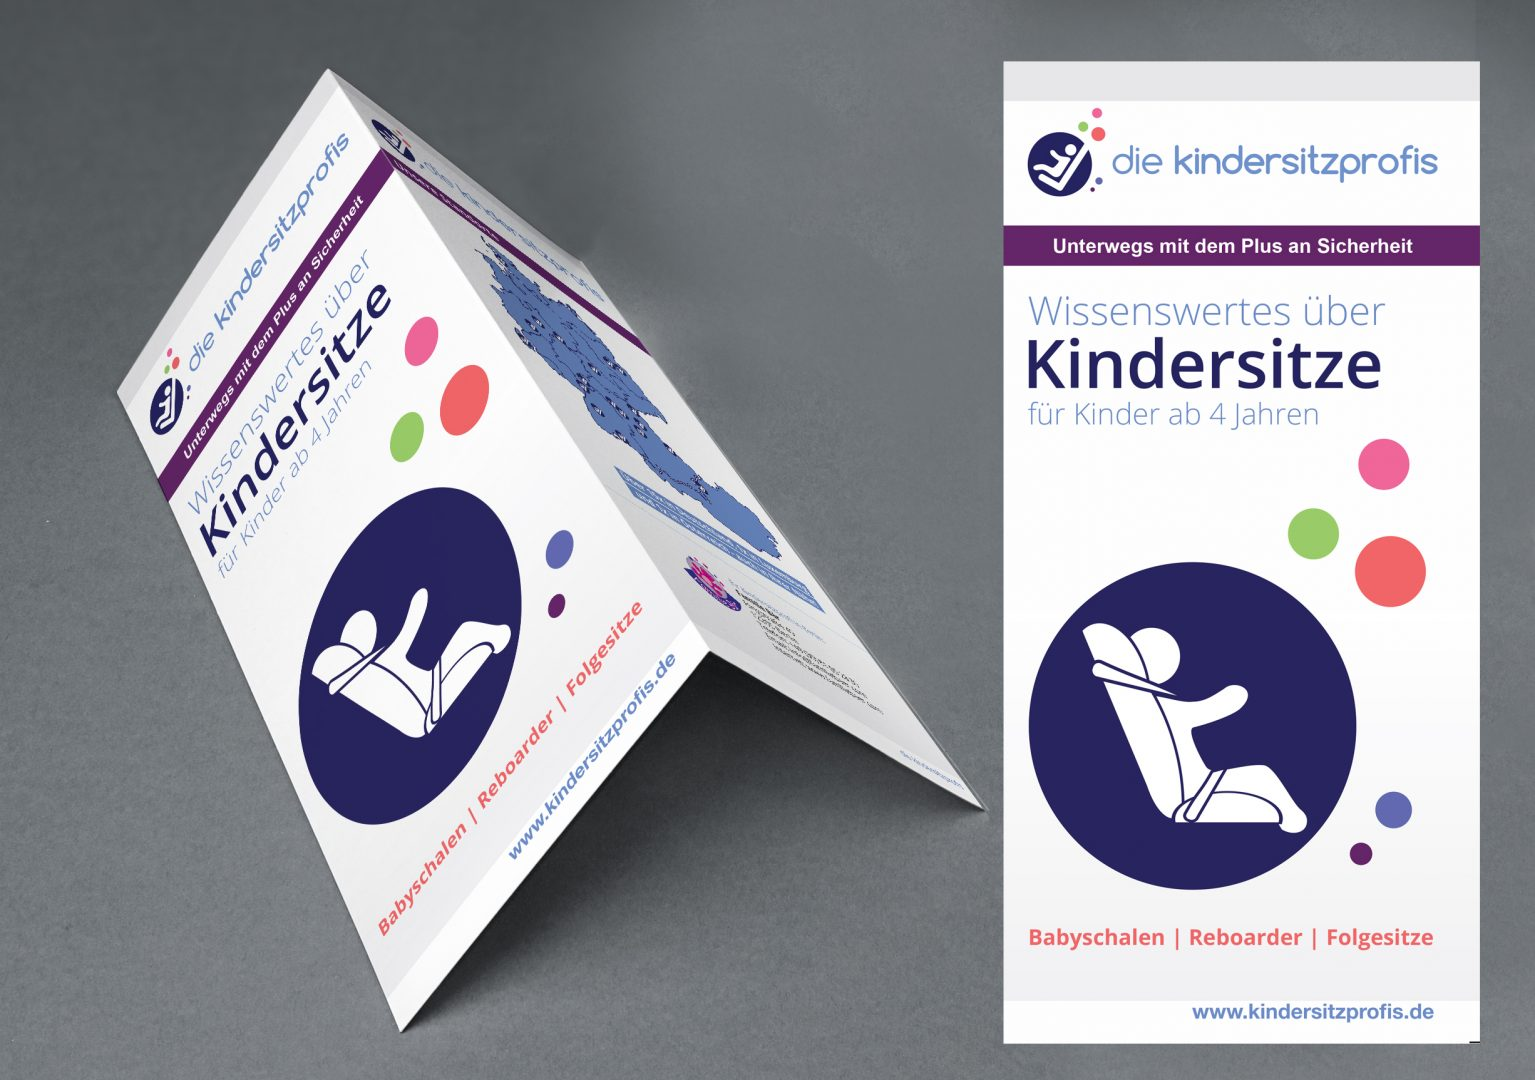 print brochure flyer design by Arif inoace design studio for child seat professionals die kindersitzprofis branding collateral